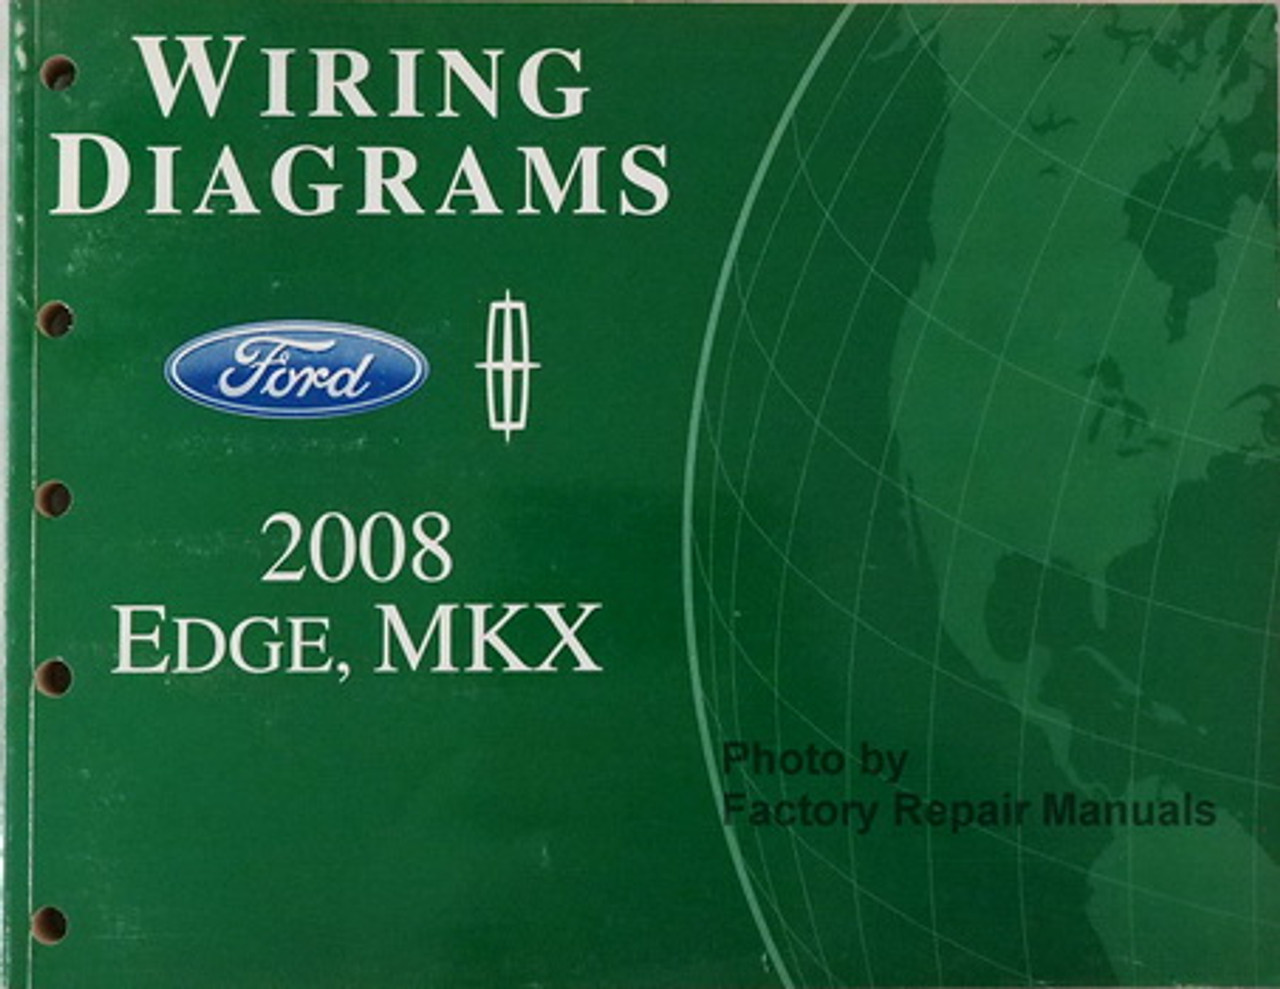 2008 Ford Edge And Lincoln Mkx Electrical Wiring Diagrams - Original Manual